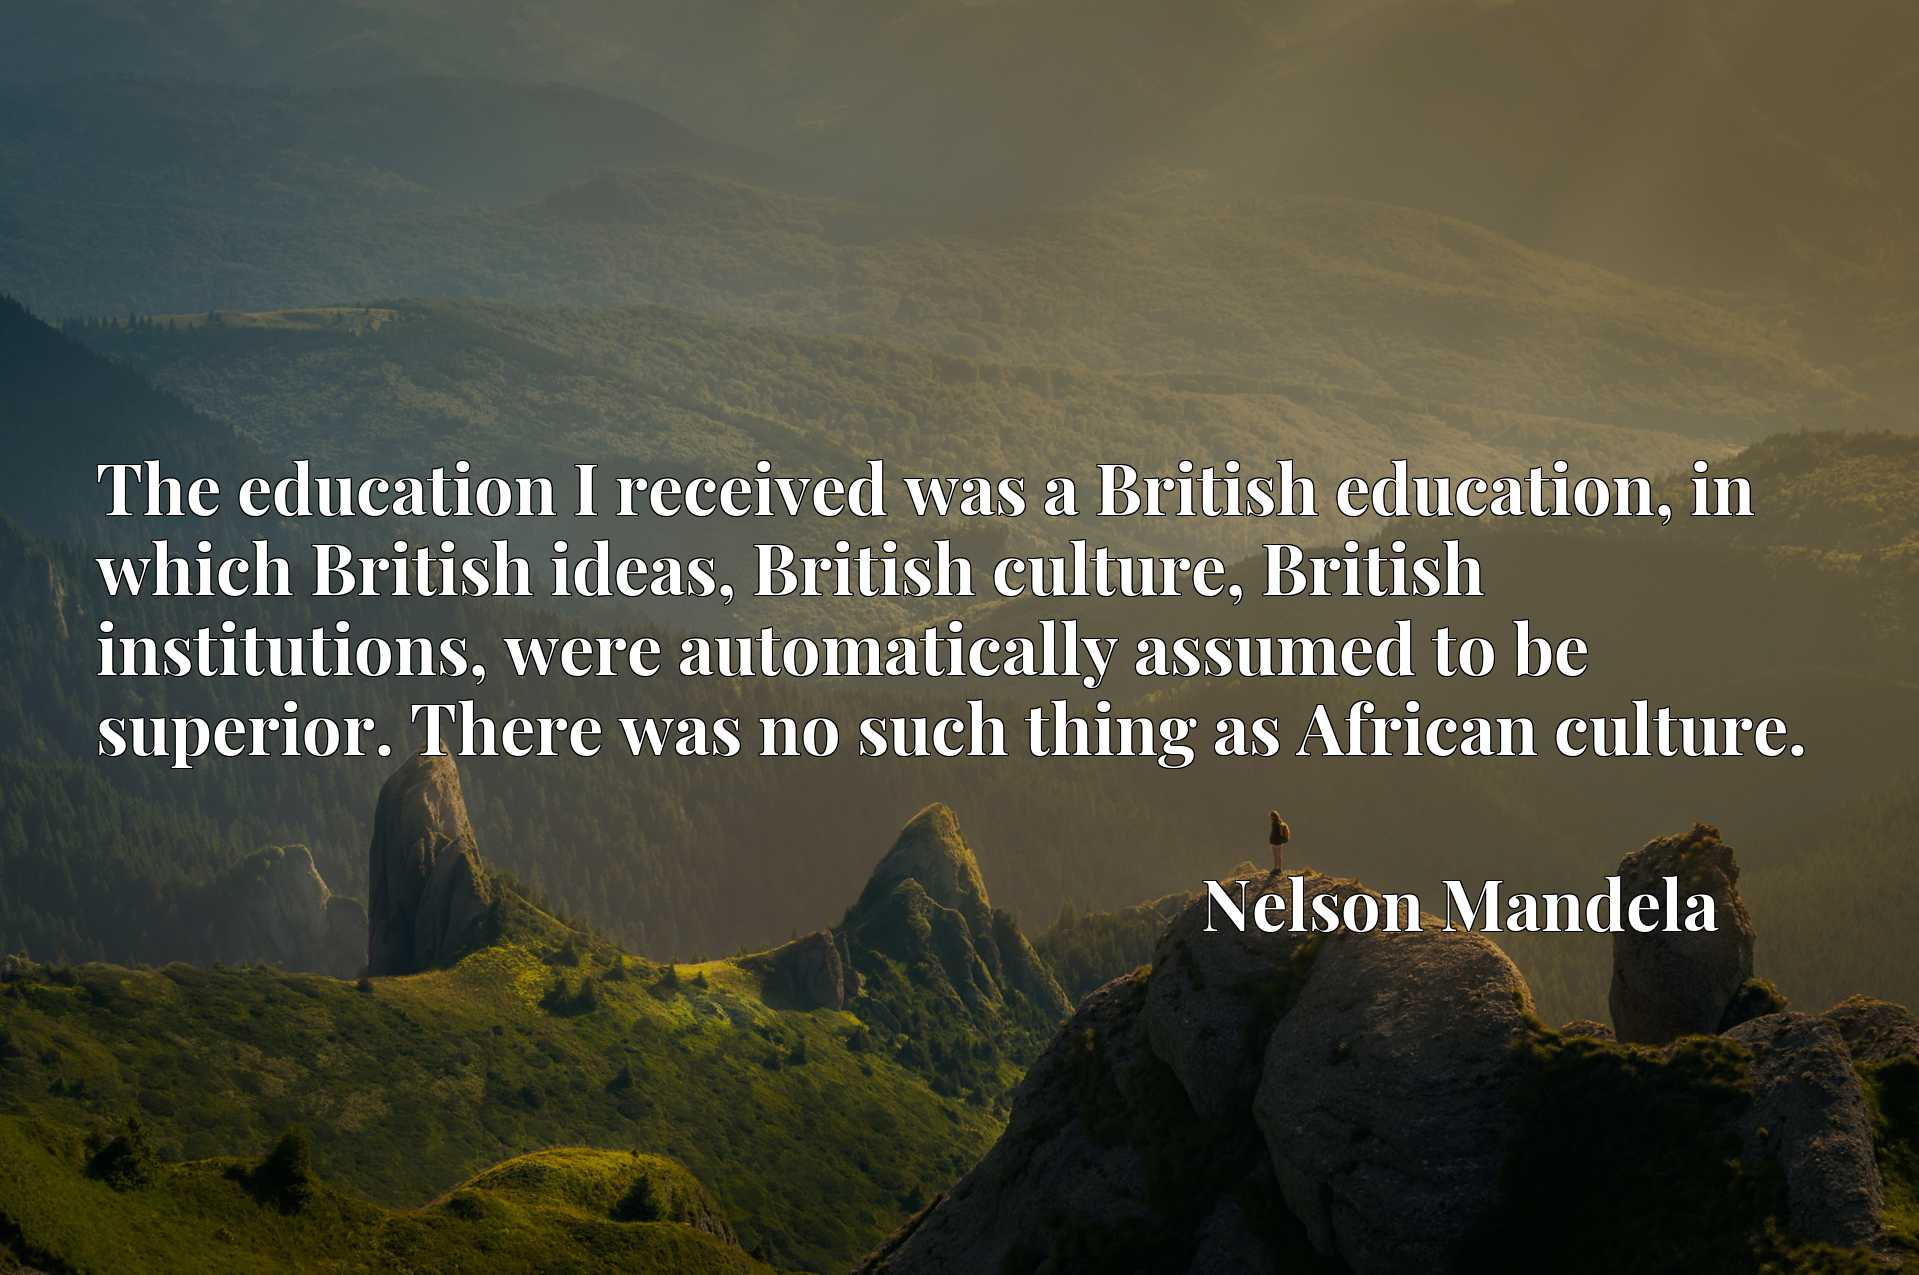 The education I received was a British education, in which British ideas, British culture, British institutions, were automatically assumed to be superior. There was no such thing as African culture.